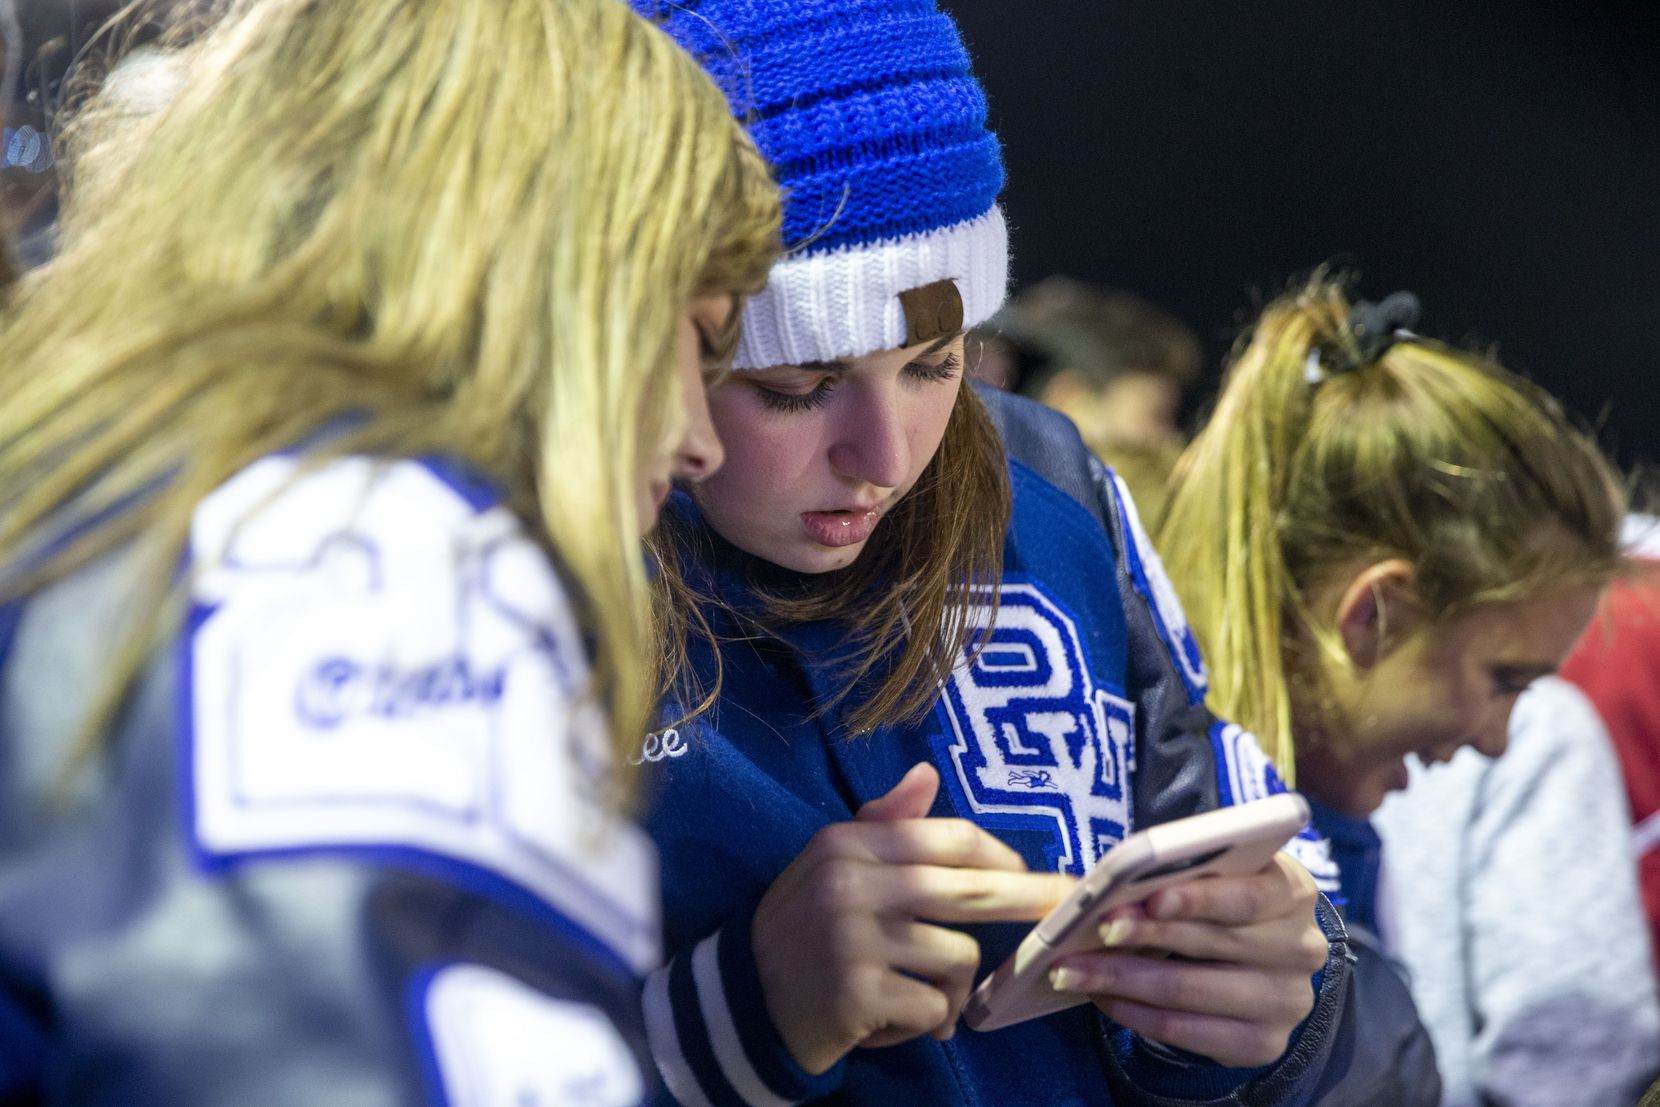 Demi Trammell, 16, shows Emalee Maze 15, both of Baytown, a photo on her phone during a football game at Barbers Hill High School on Oct. 25, 2019, in Mont Belvieu. The city added free WiFi to the football stadium as a way to market its internet service, MB Link.